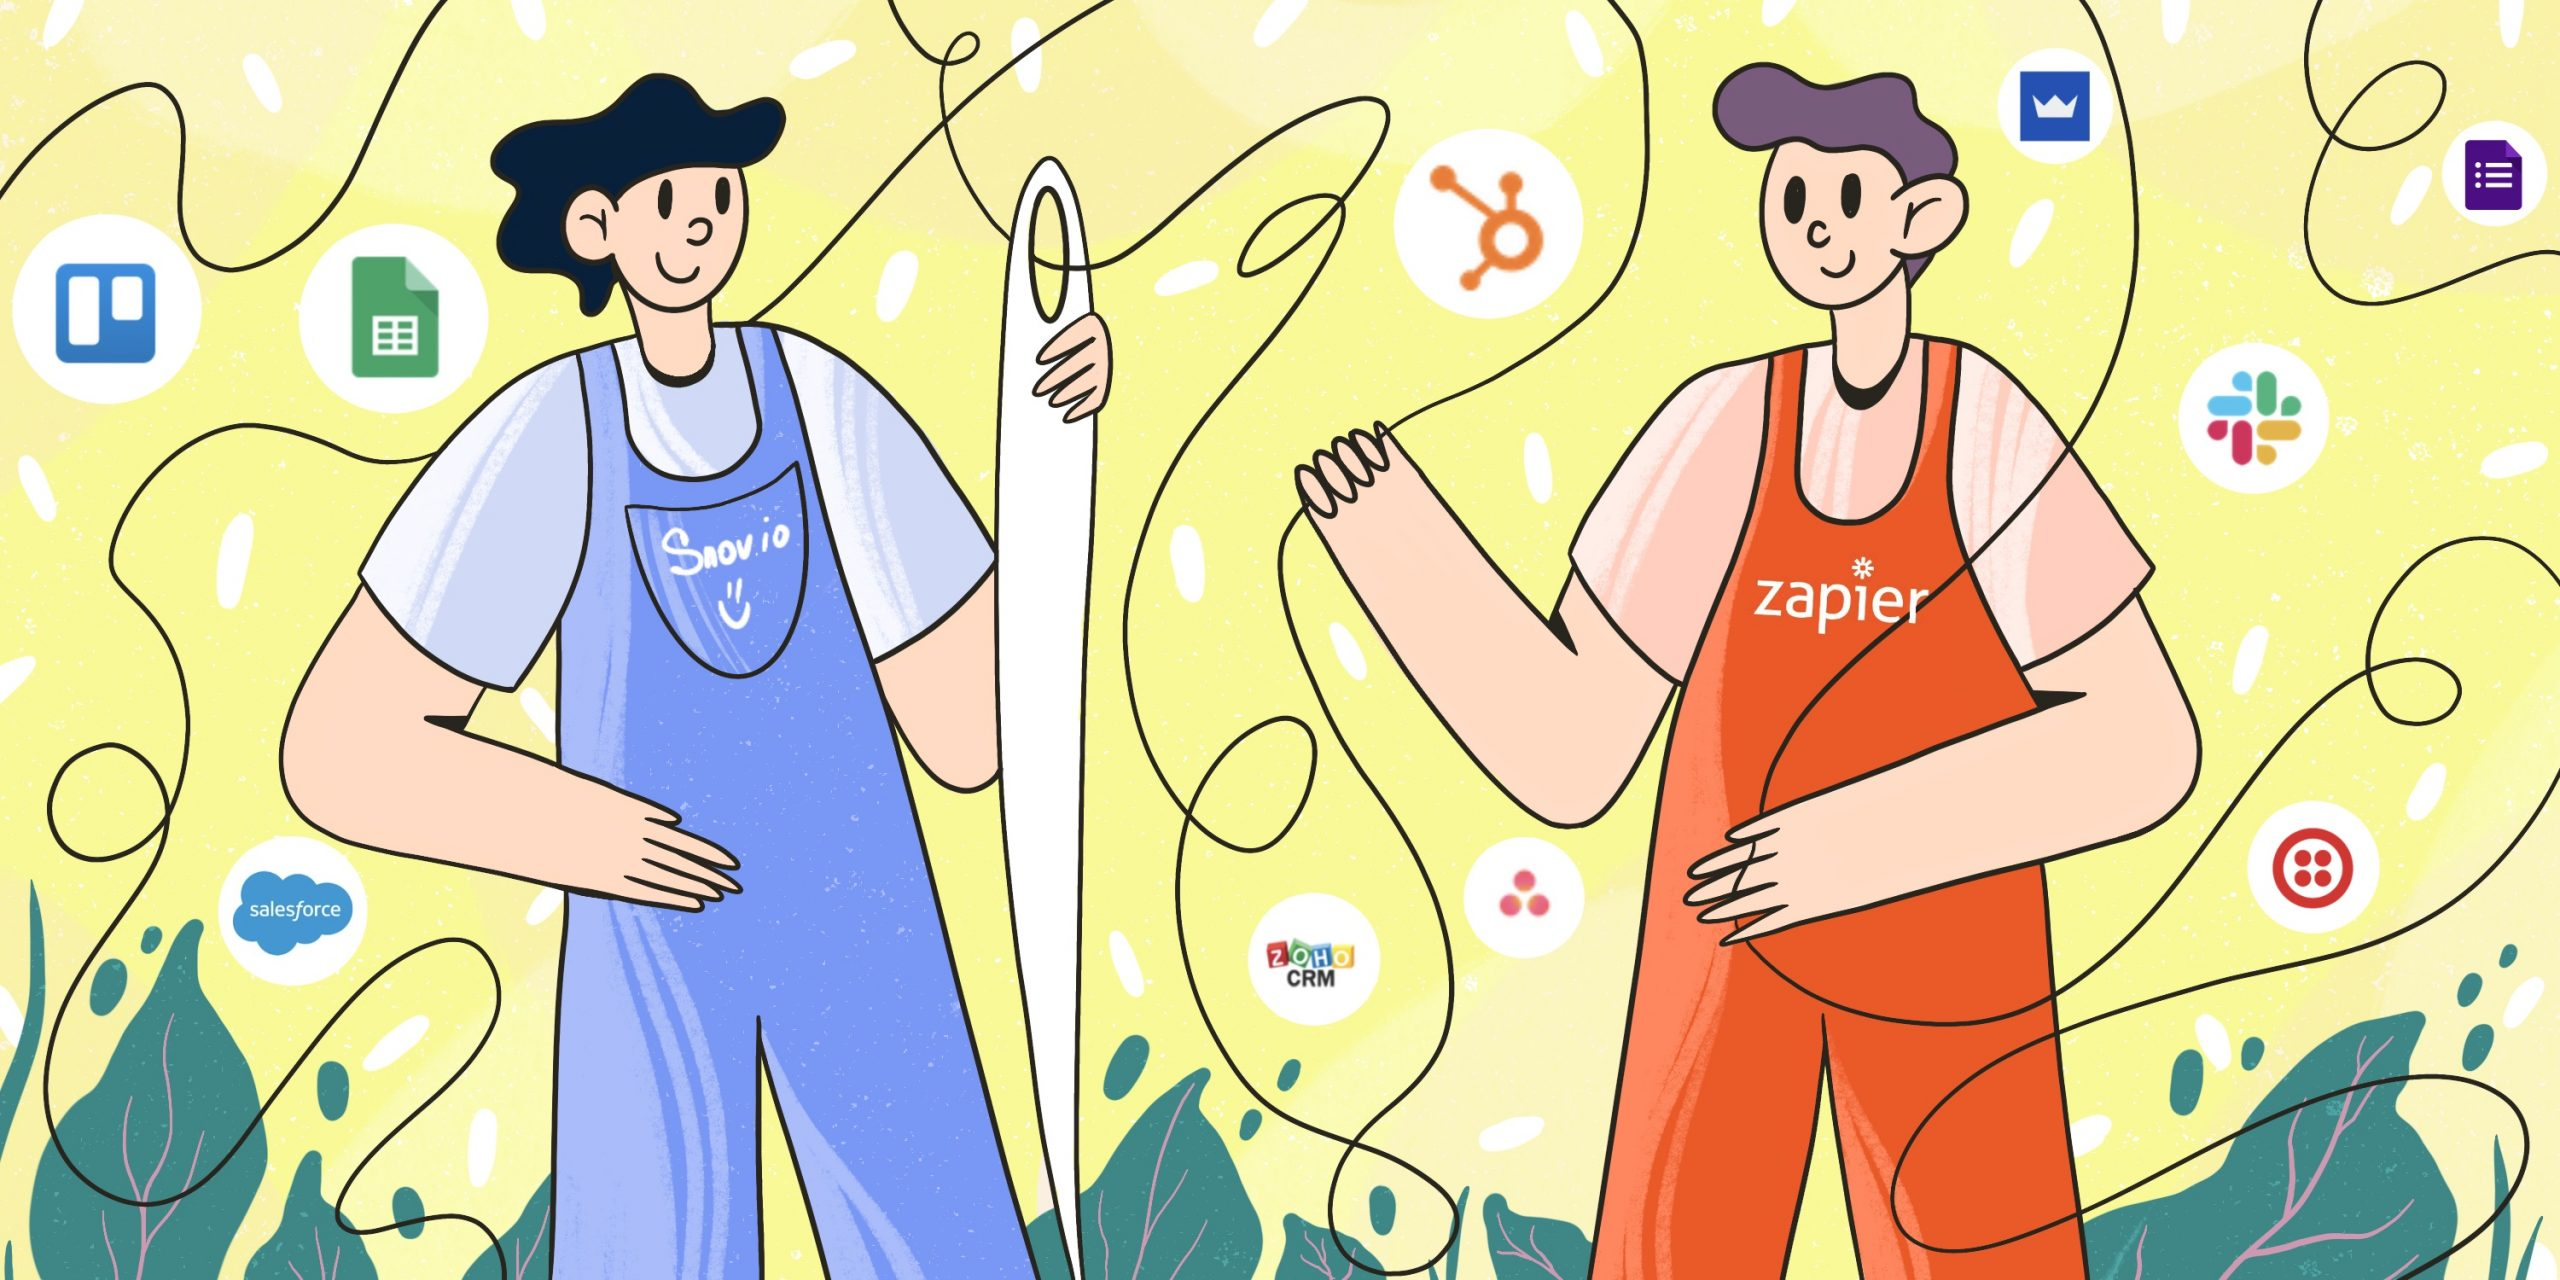 Integrate Your Favorite Apps With Snov.io: Zapier Integration Is Here